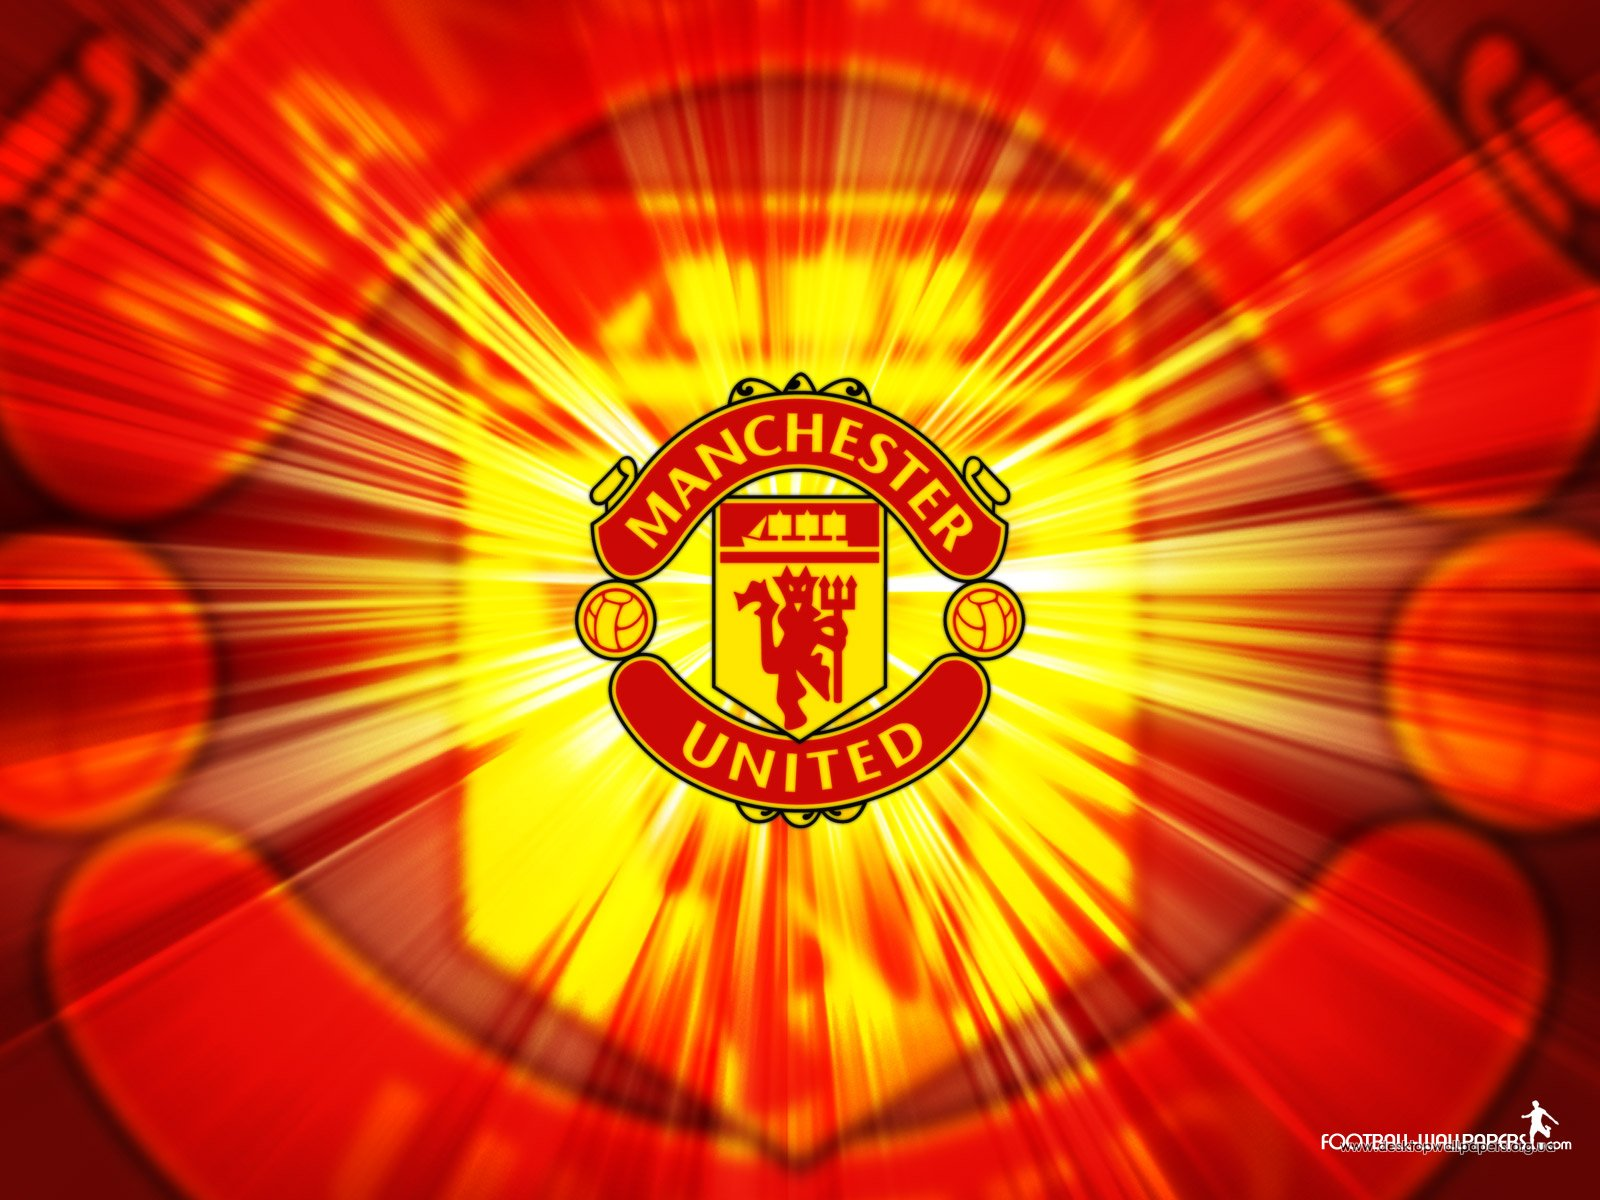 Manchester United: Free Wallpaper Download